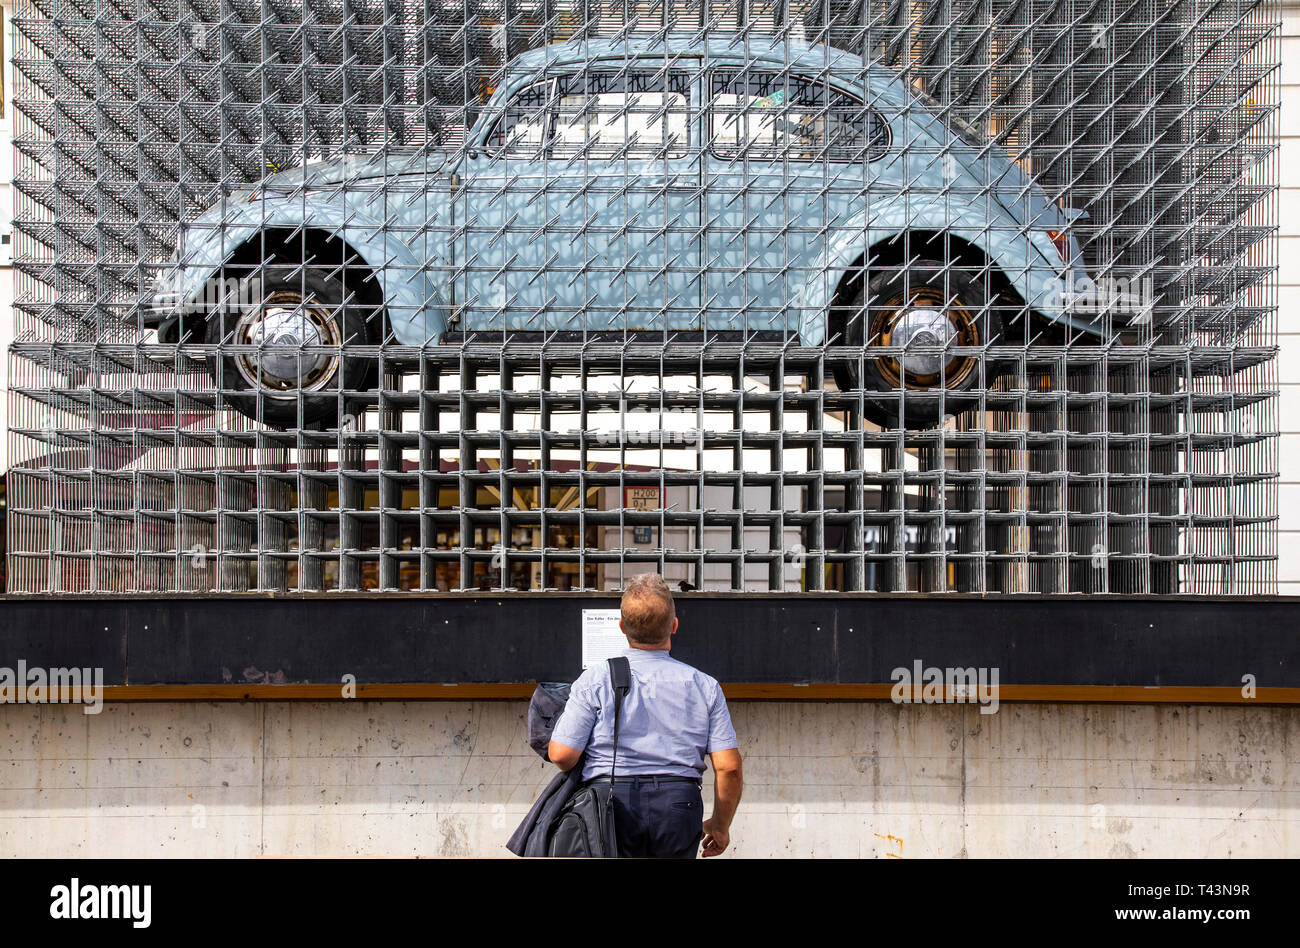 Karlsruhe, artwork by Georg Seibert, The Beetle a German wonder, VW Beetle in a shell made of galvanized structural steel, part of the ZKM Museum, Kar - Stock Image